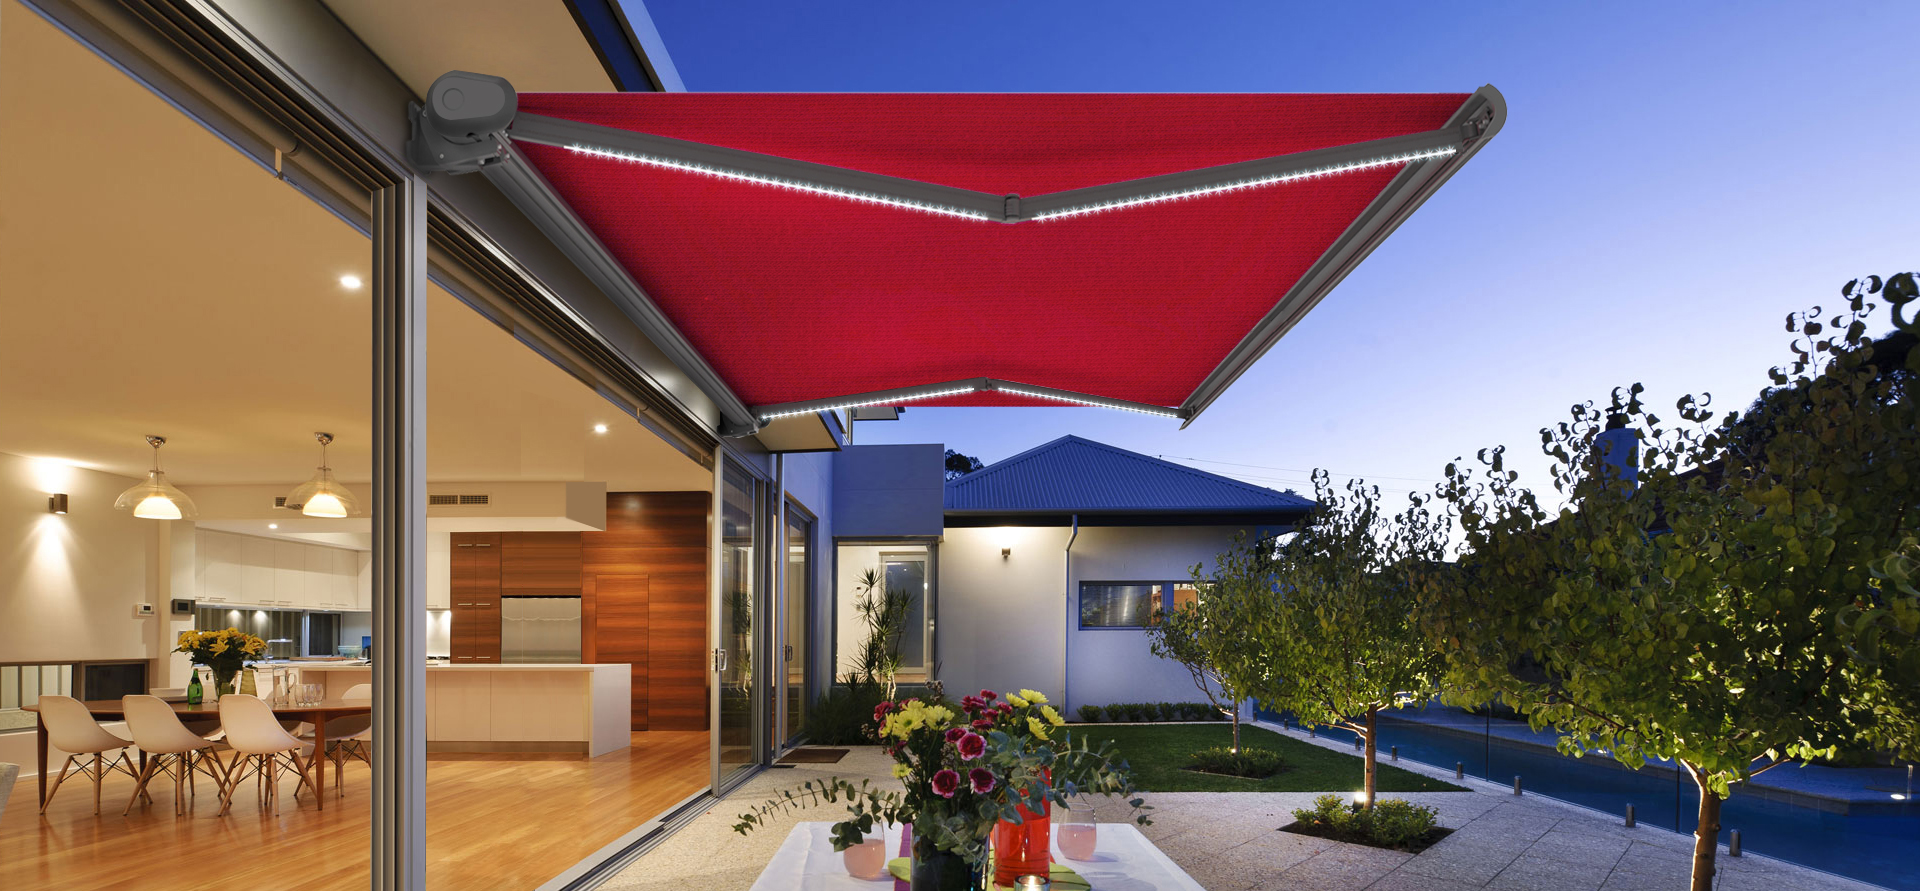 Full Cassette Balcony Motorized Roof Waterproof Outdoor Sun Shade Rain Electric Aluminum Window Terrace Retractable Awning